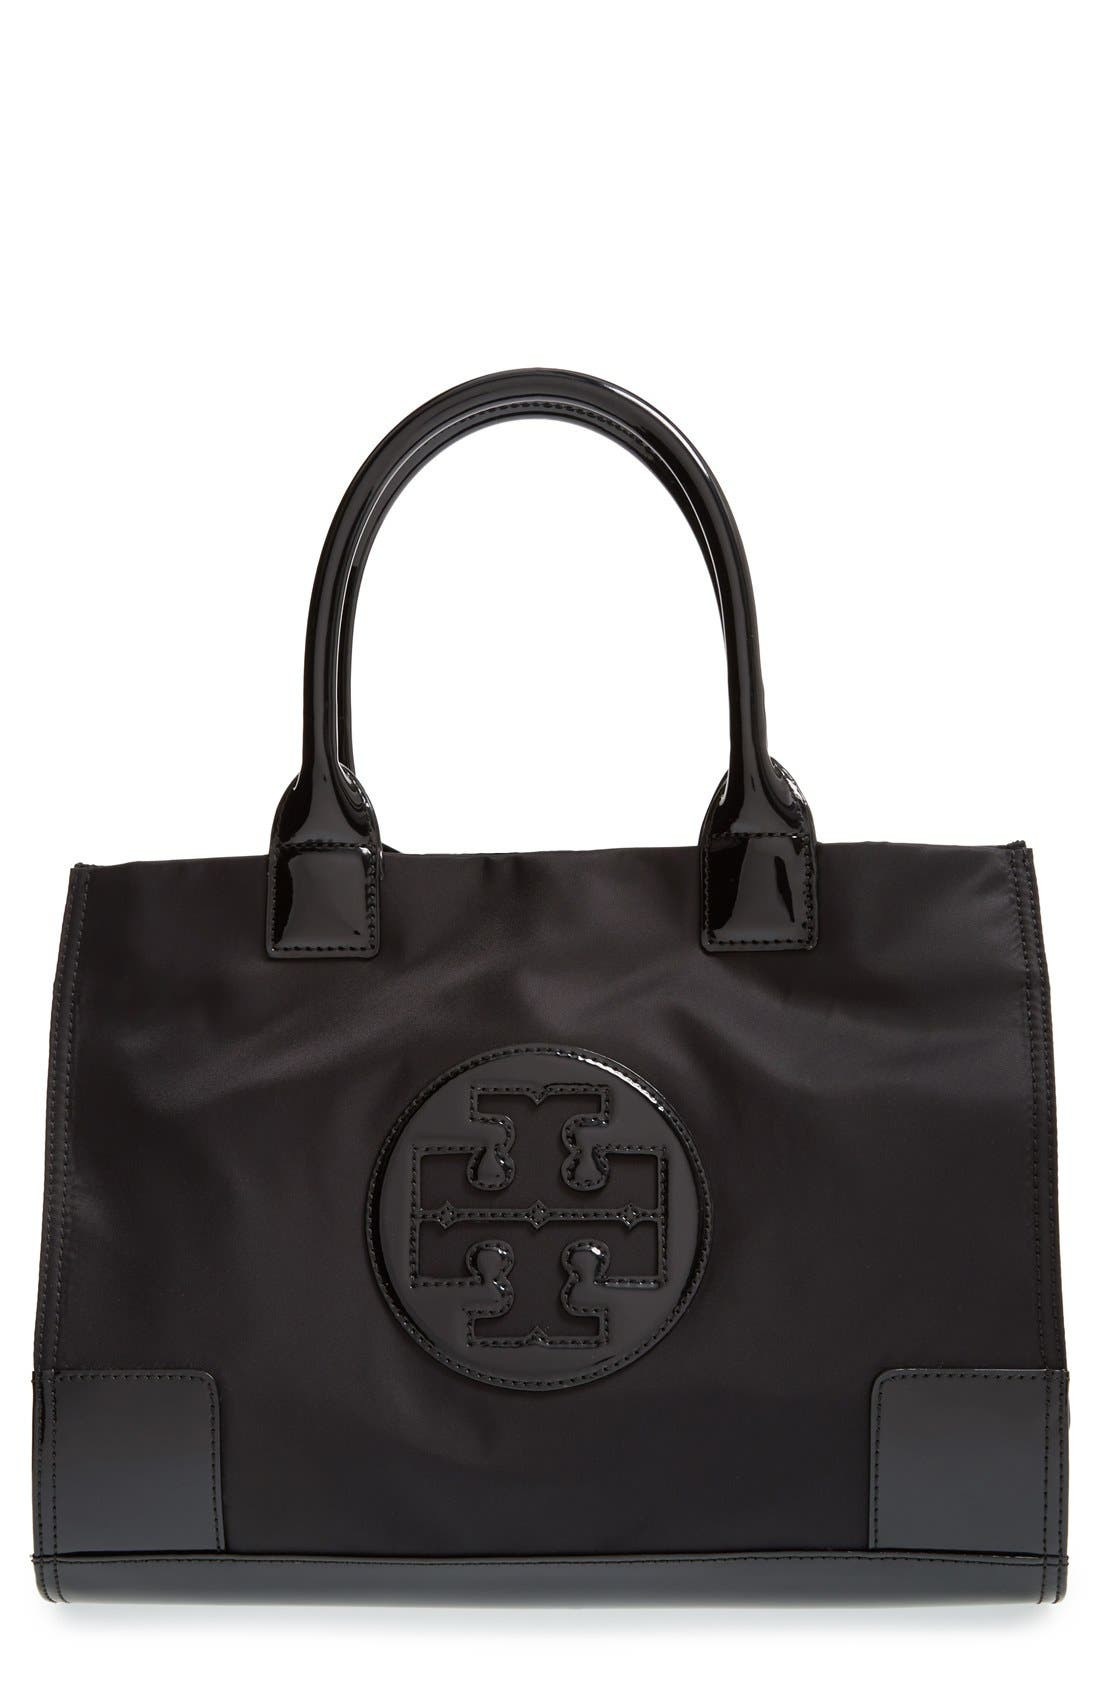 Main Image - Tory Burch 'Mini Ella' Nylon Tote